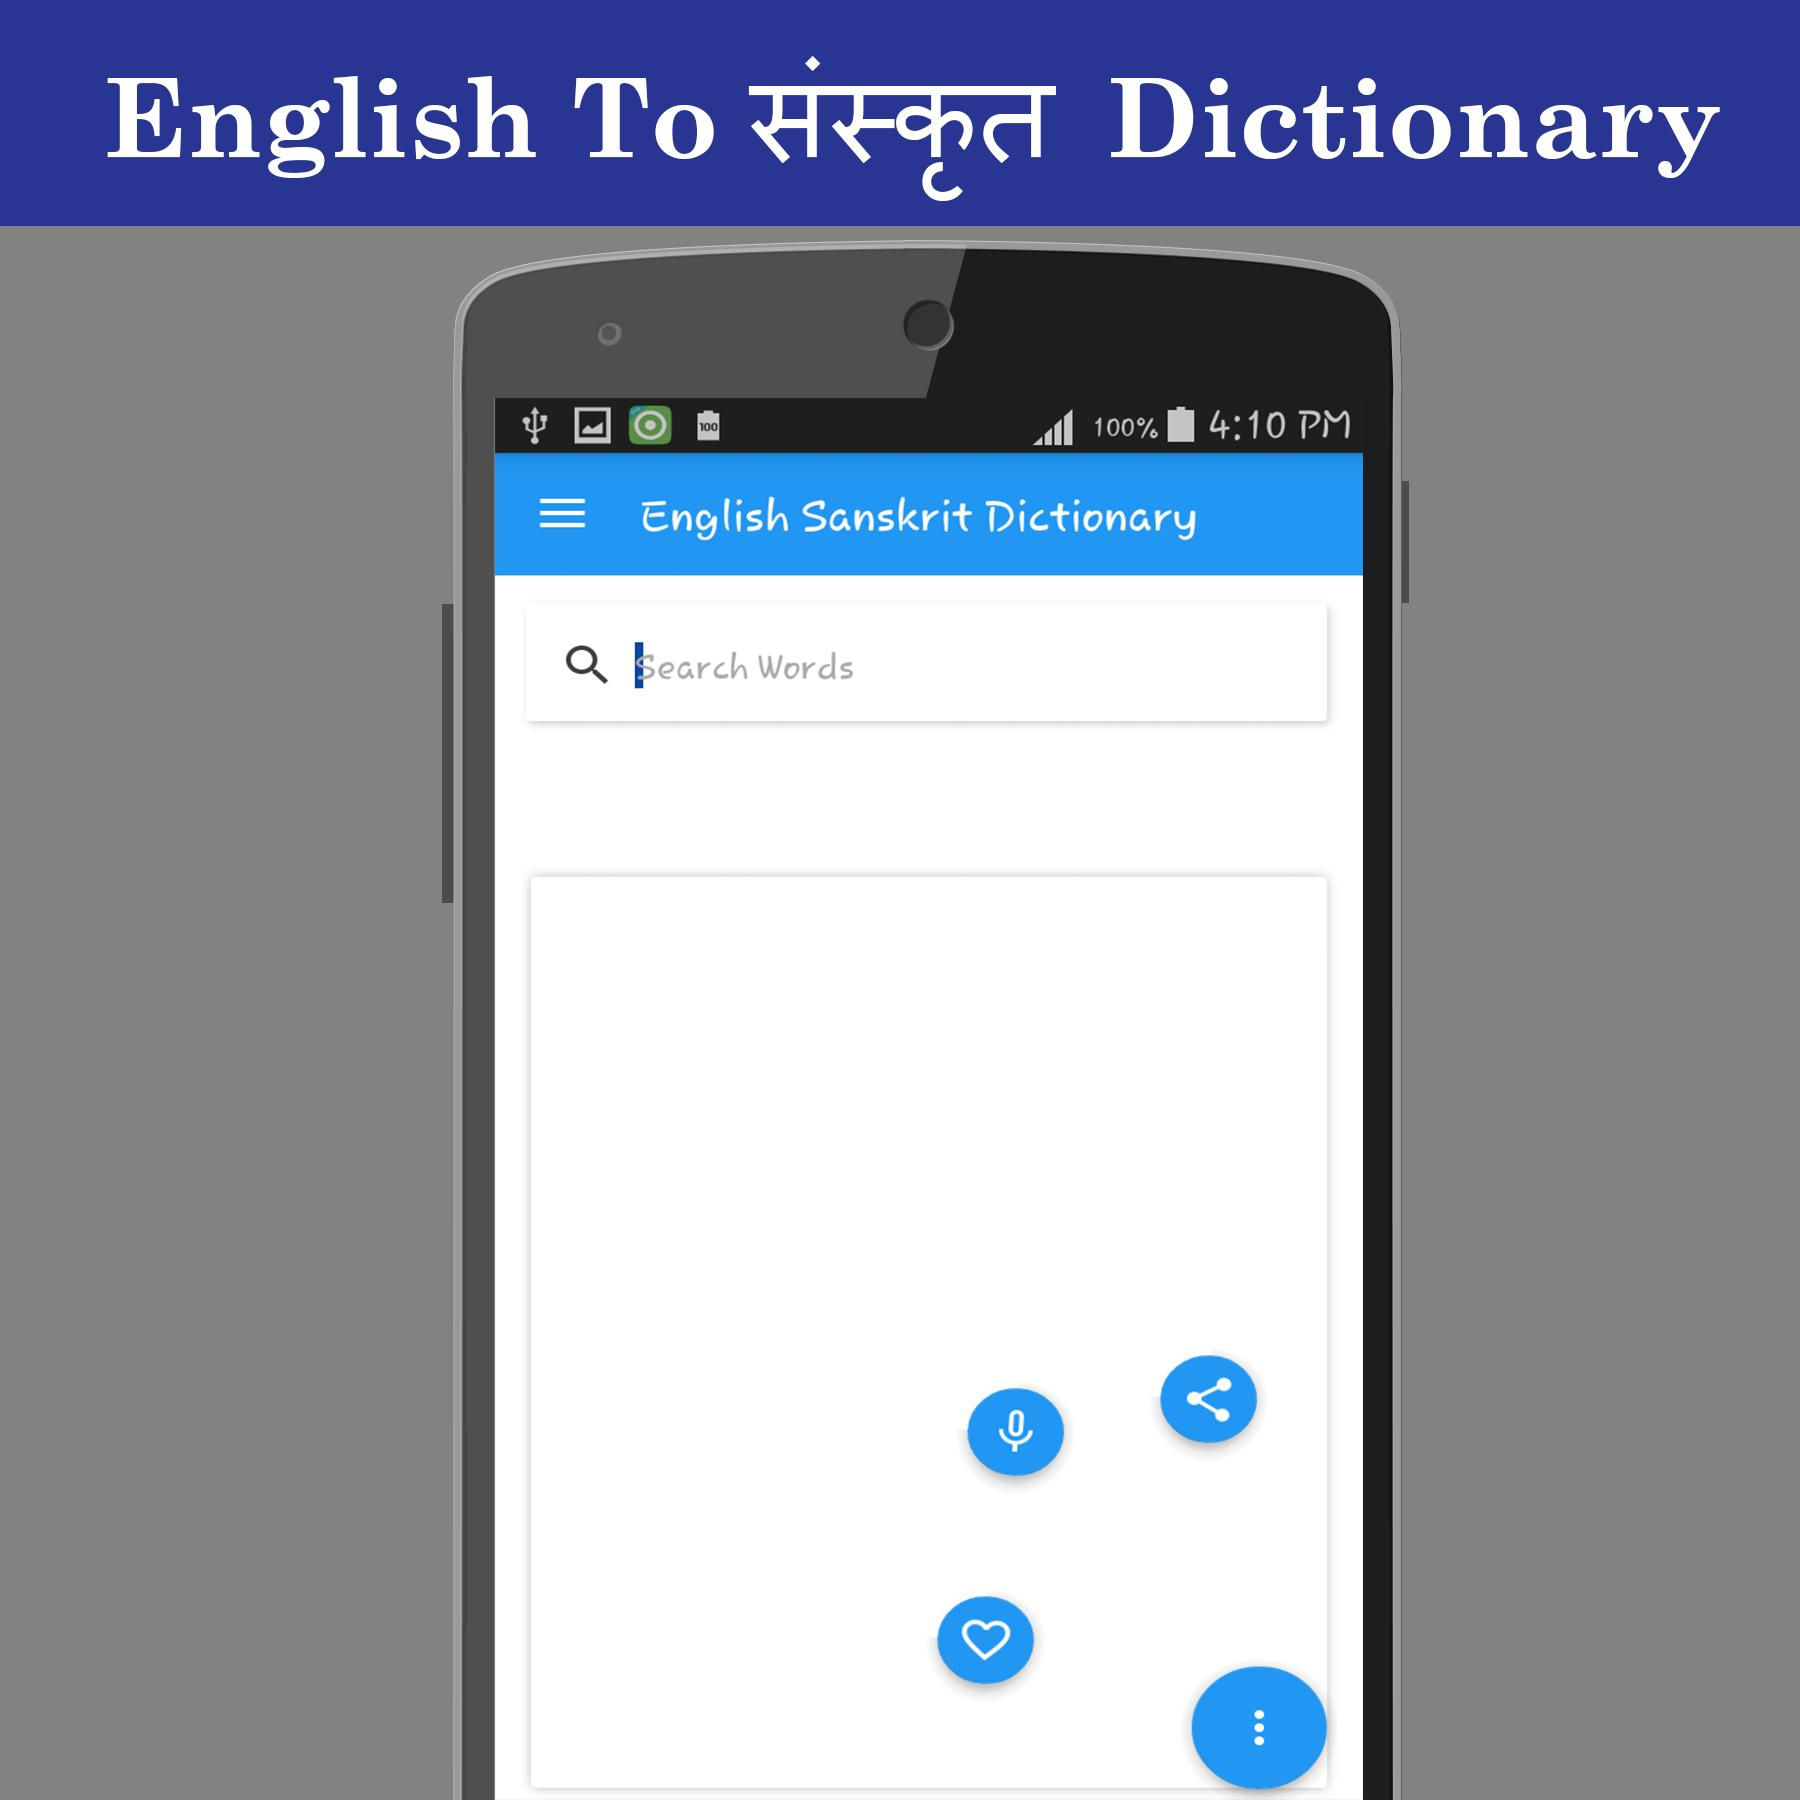 English To Sanskrit Dictionary for Android - APK Download